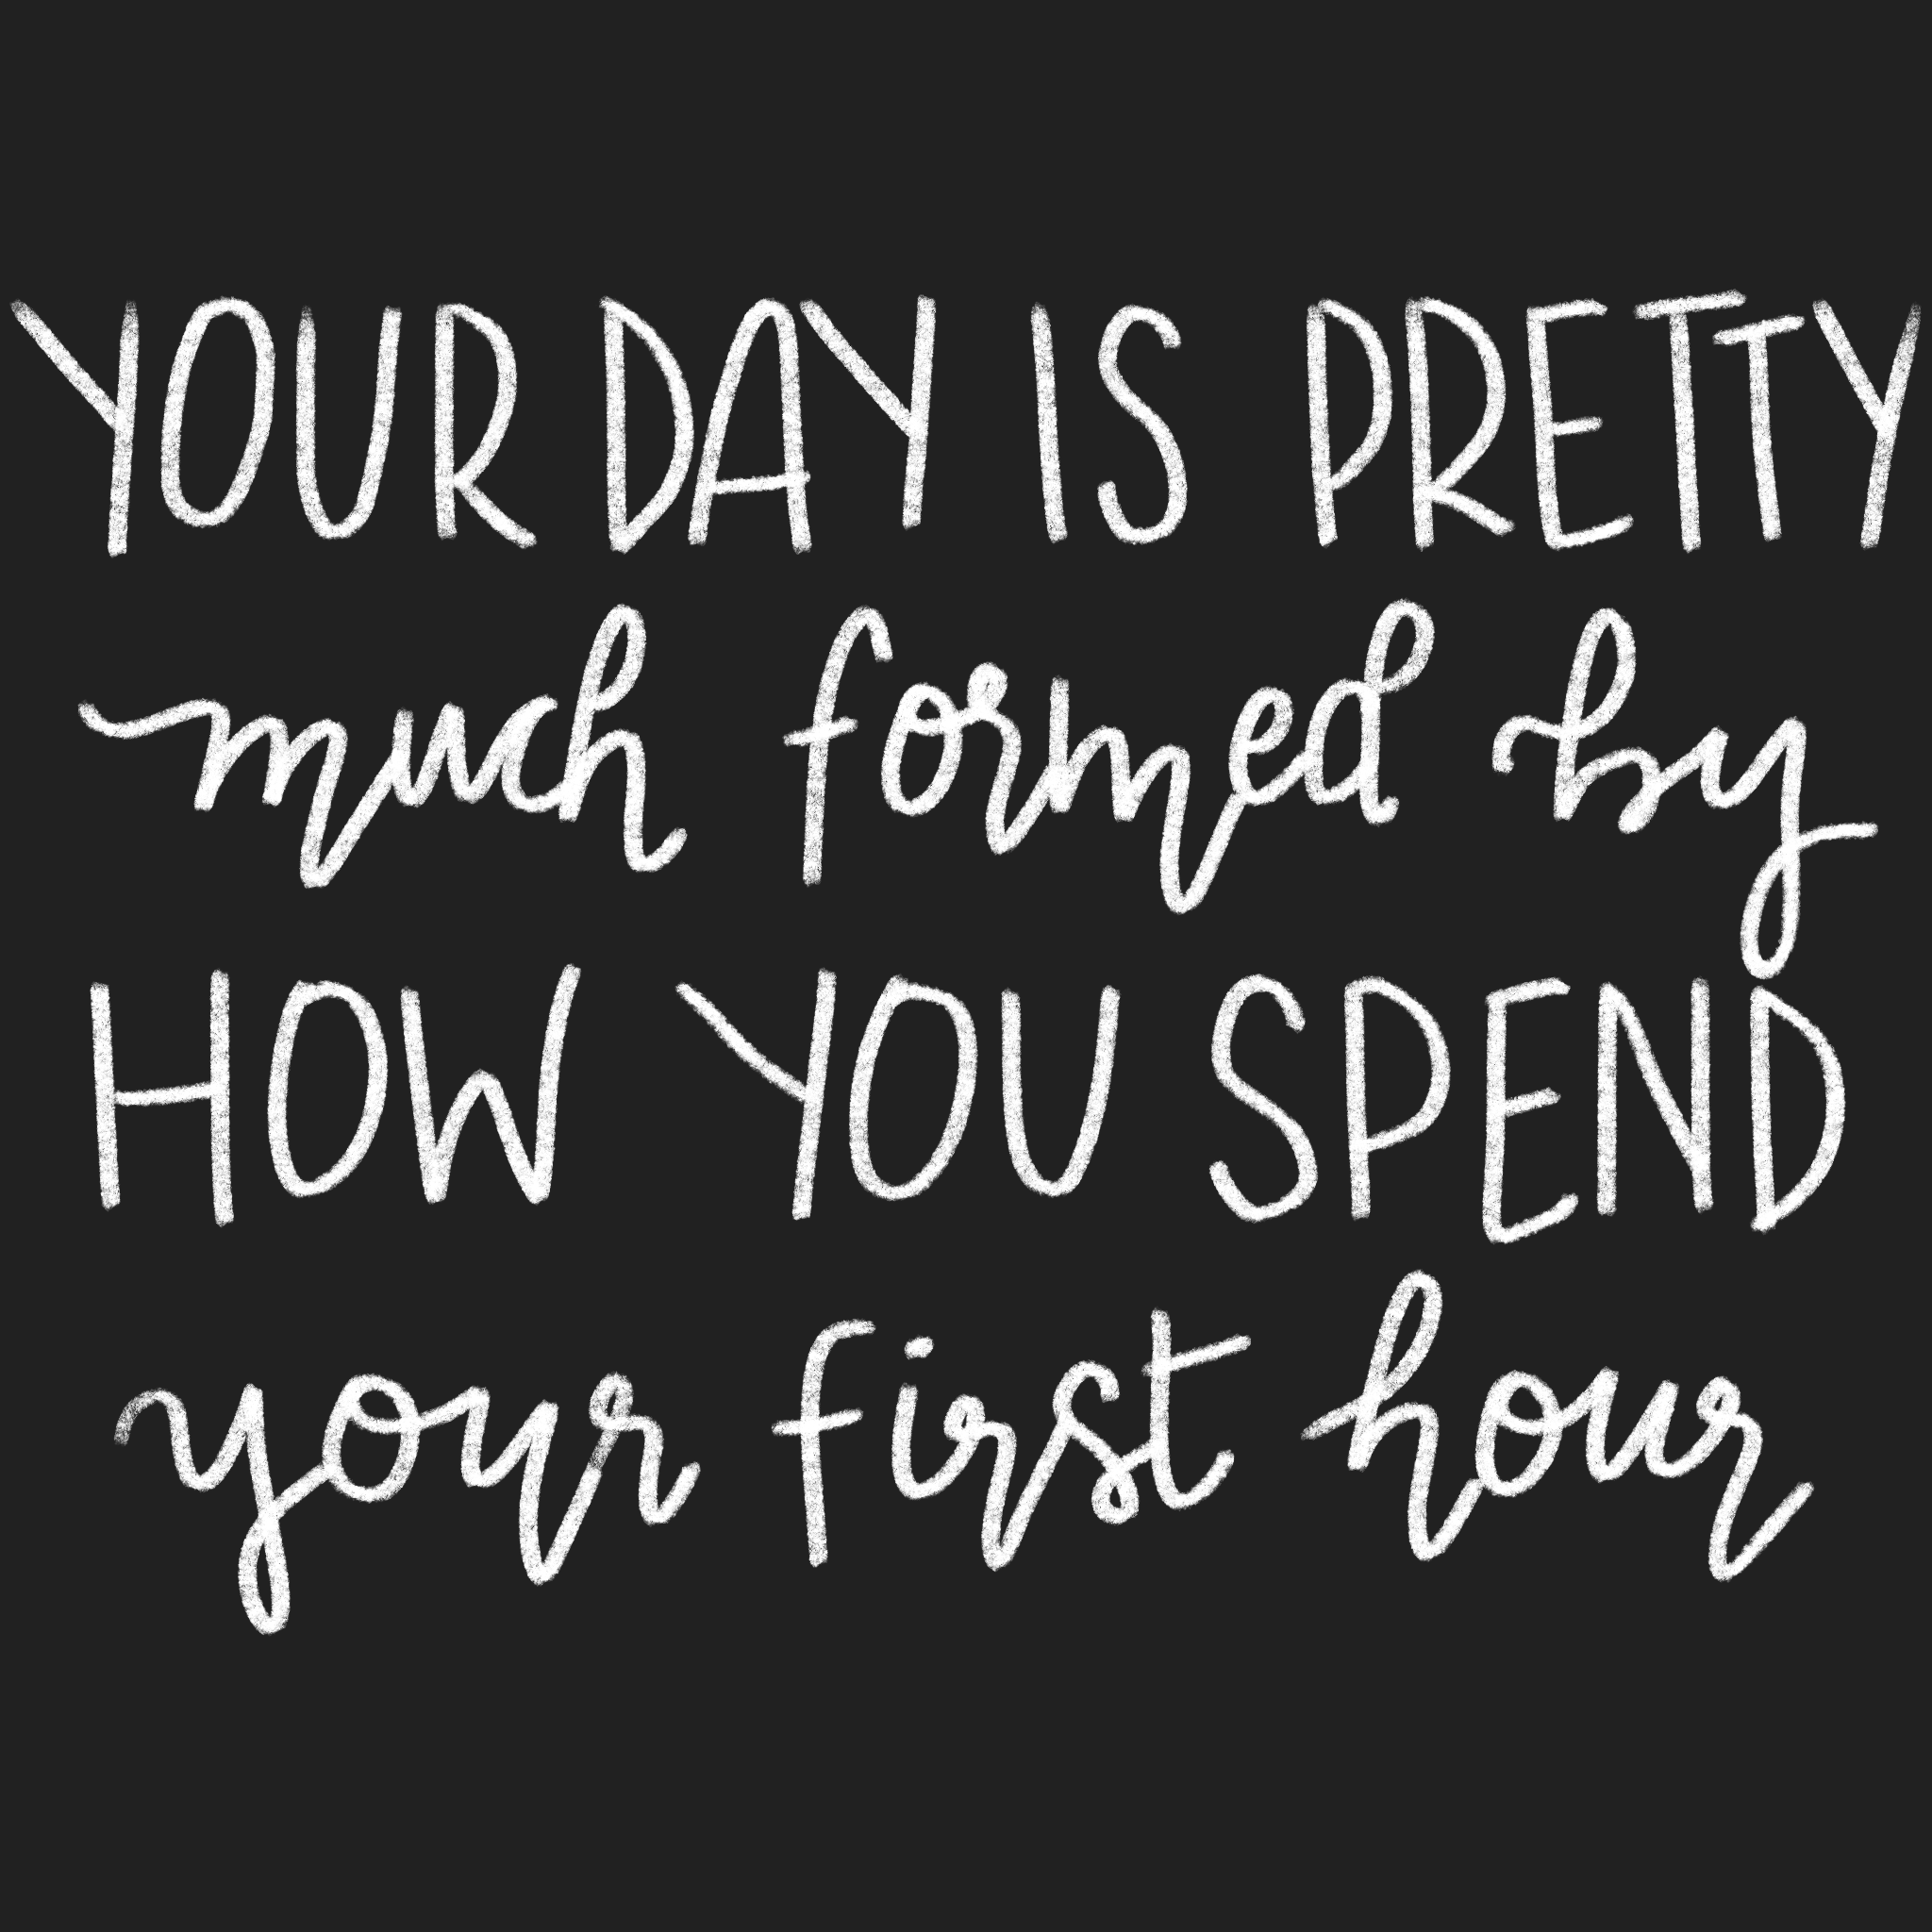 your day is pretty much formed by how you spend your first hour